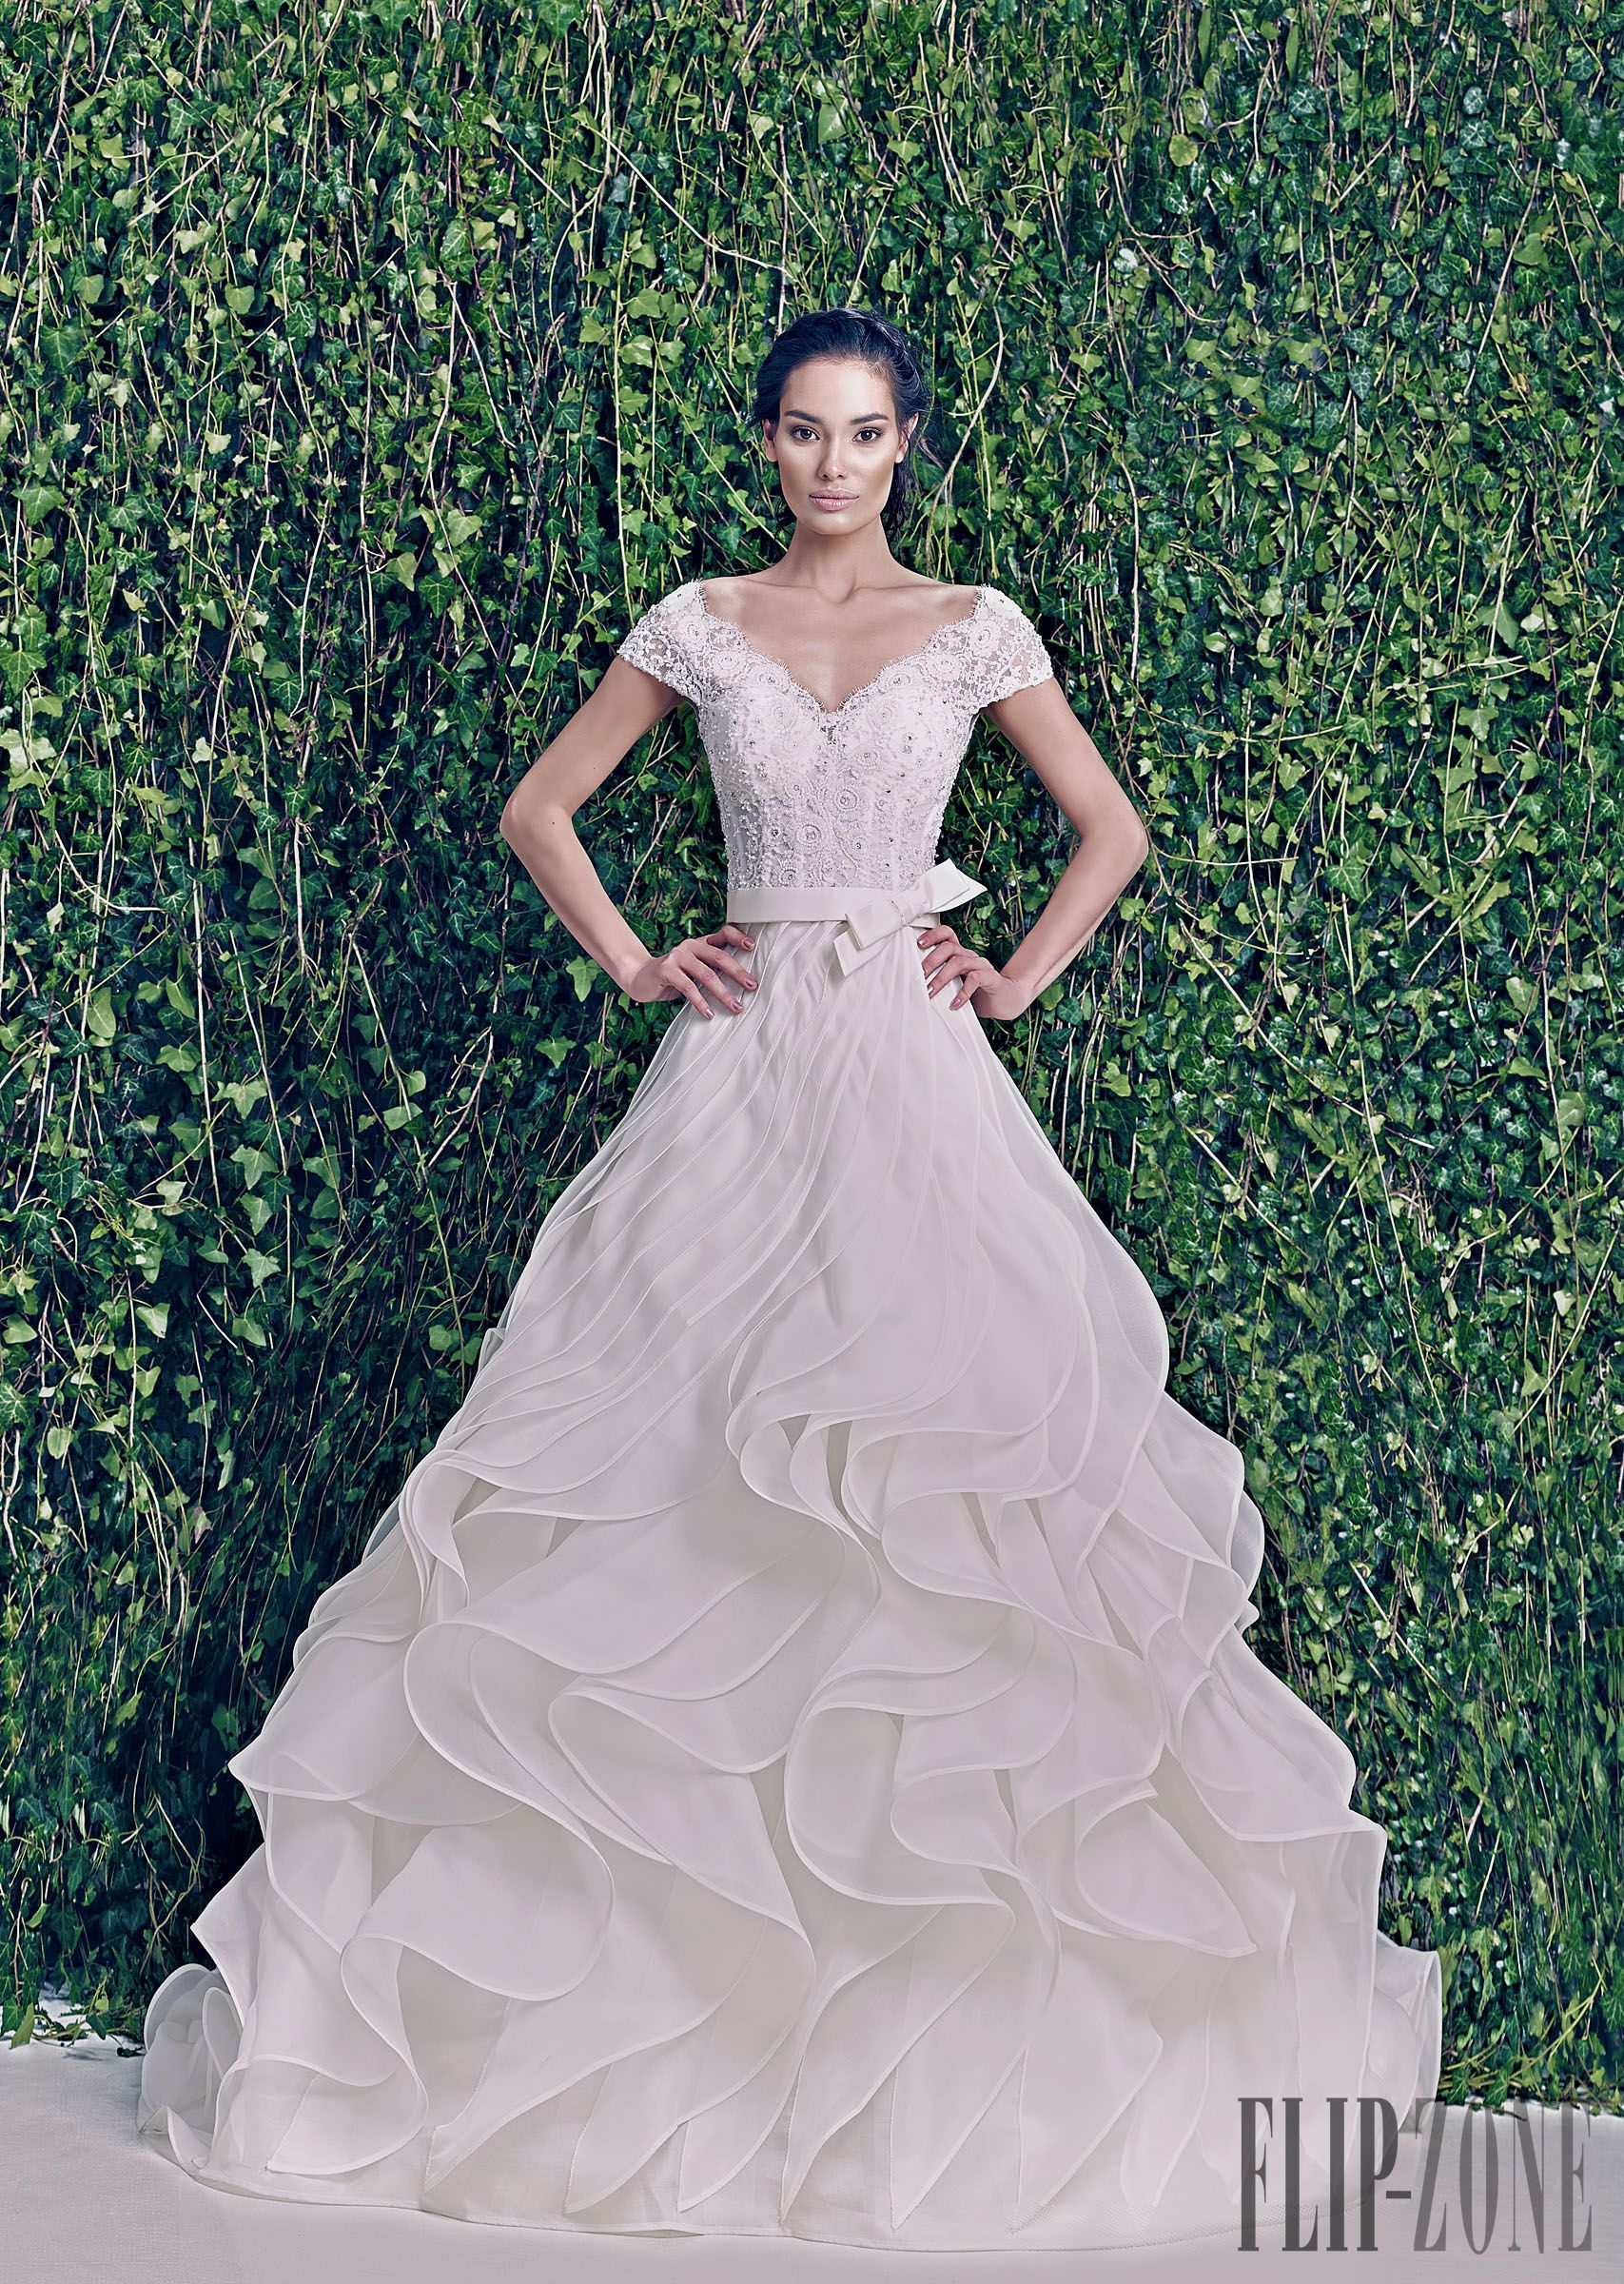 Wedding dress patterns with sleeves  Zuhair Murad AutunnoInverno   Sposa  itflipzone